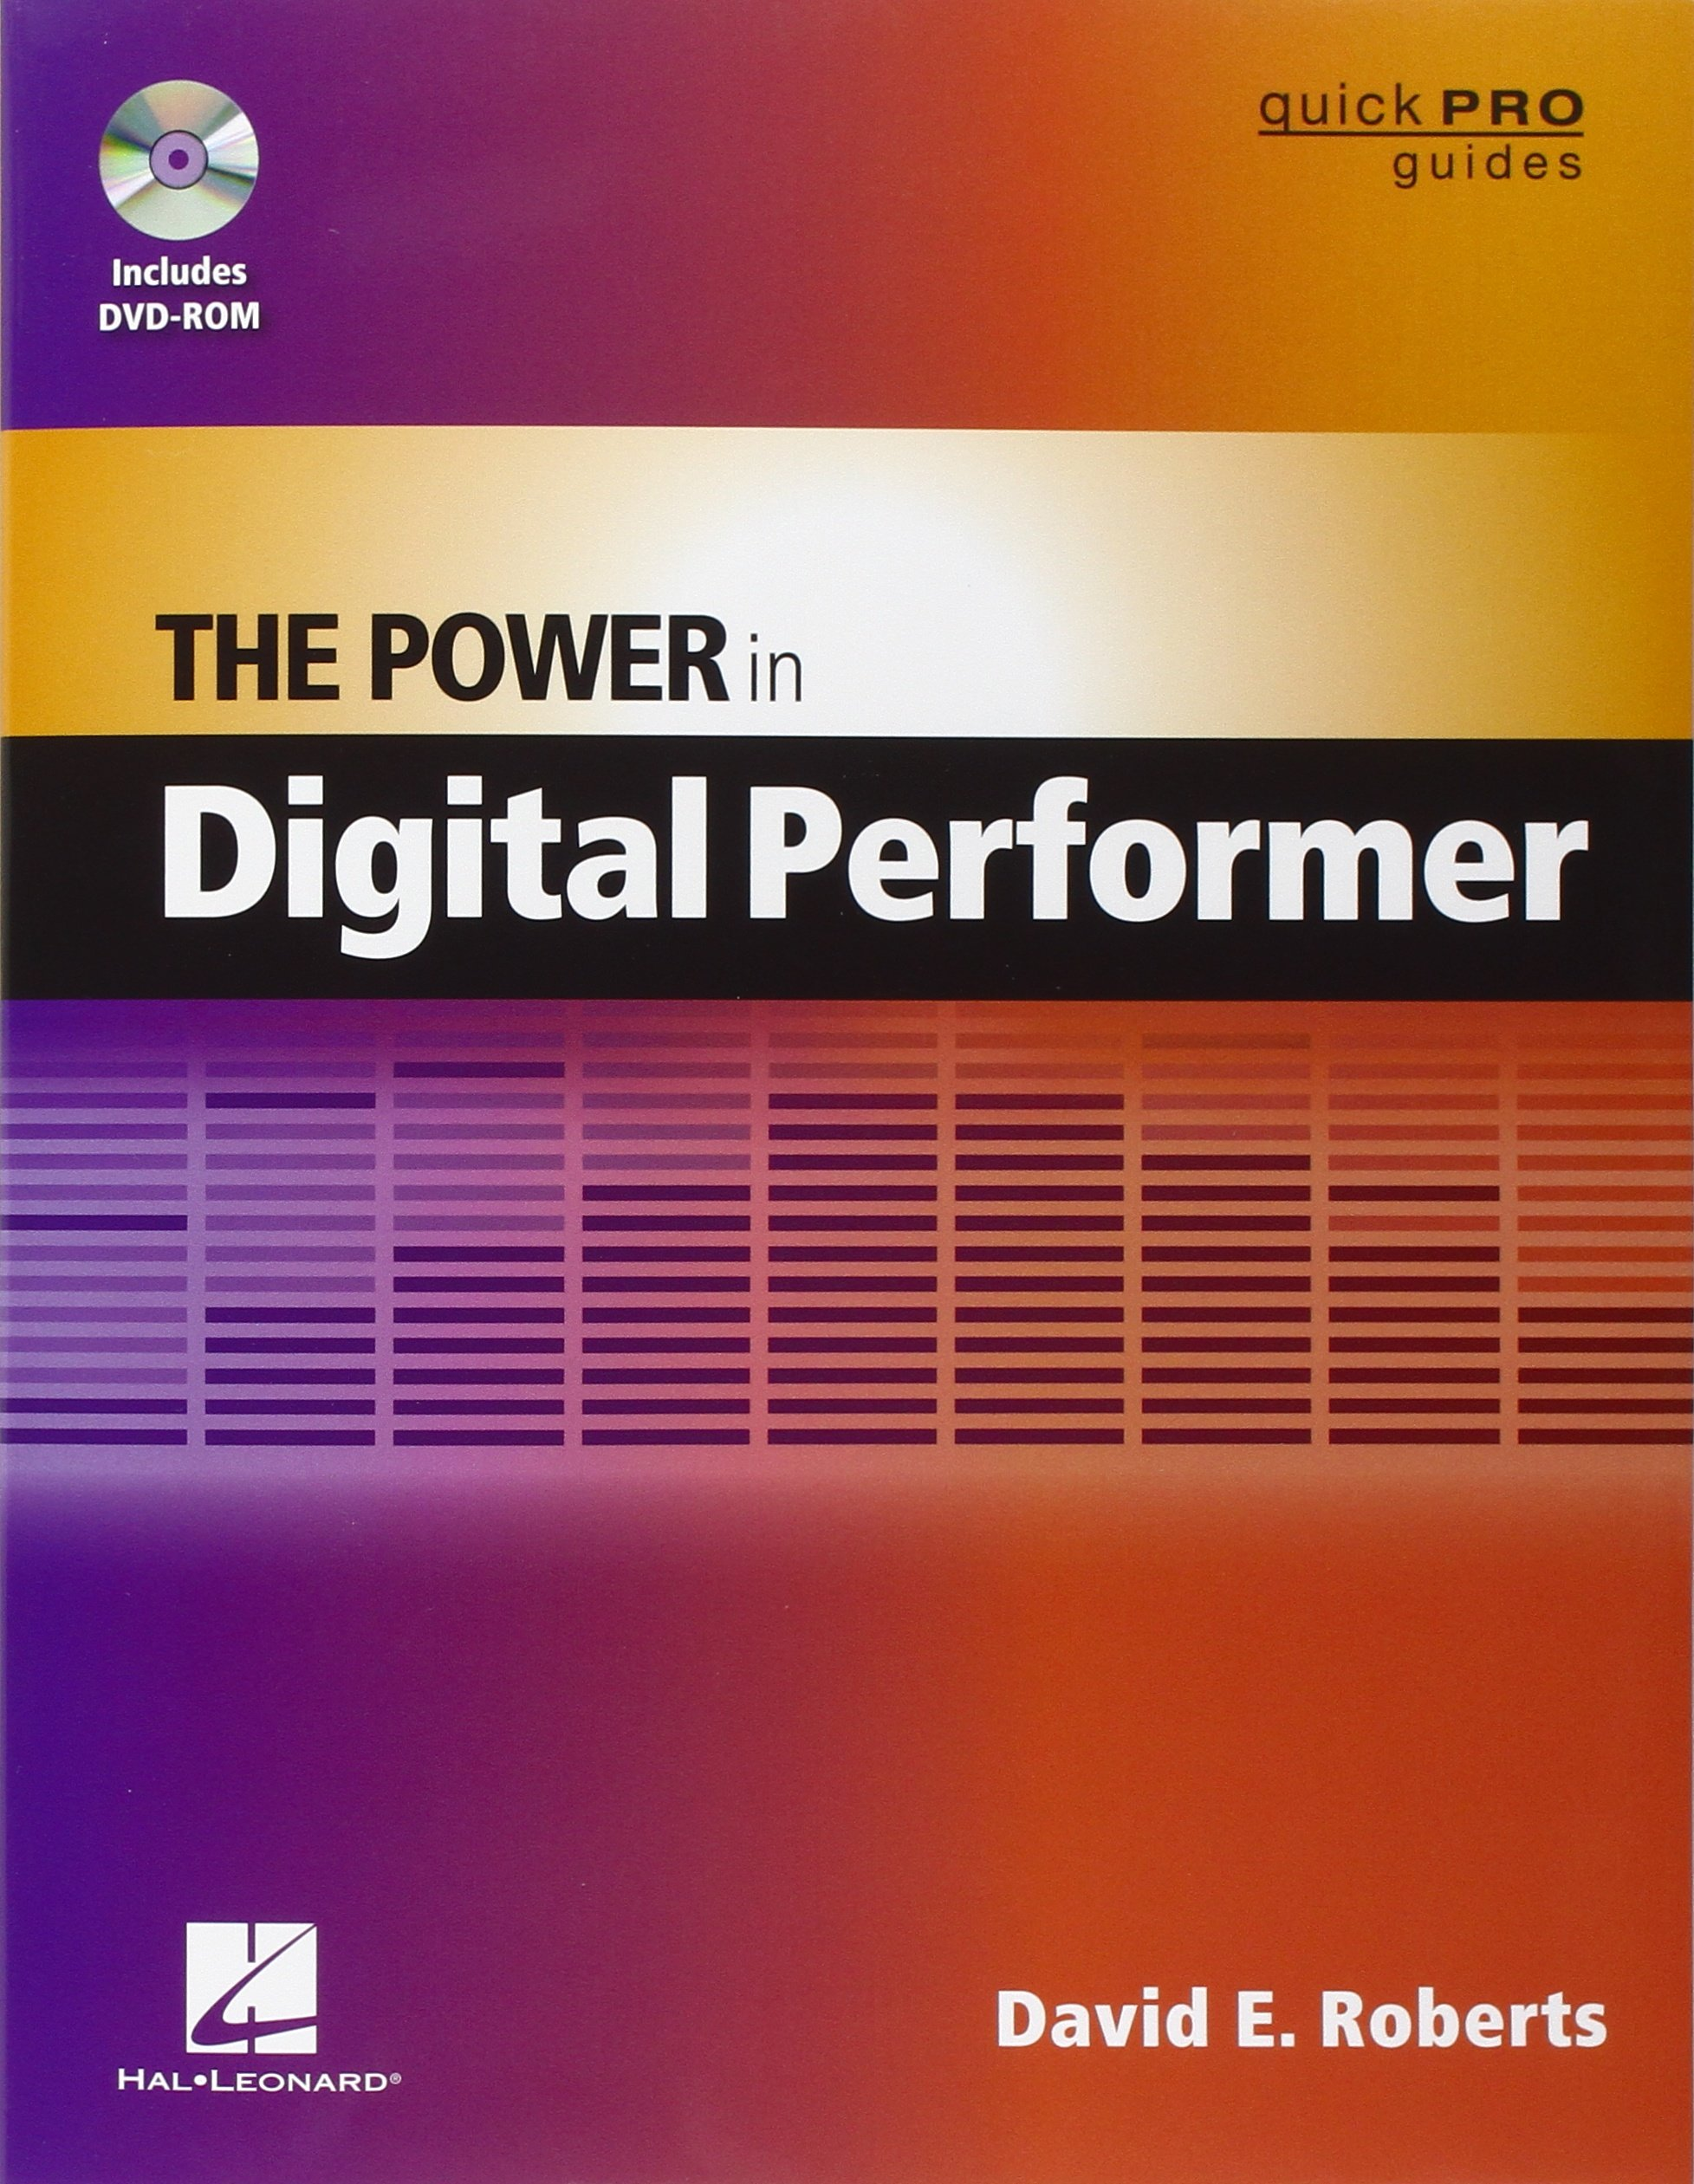 The Power in Digital Performer (Quick Pro Guides) (Guick Pro Guides)